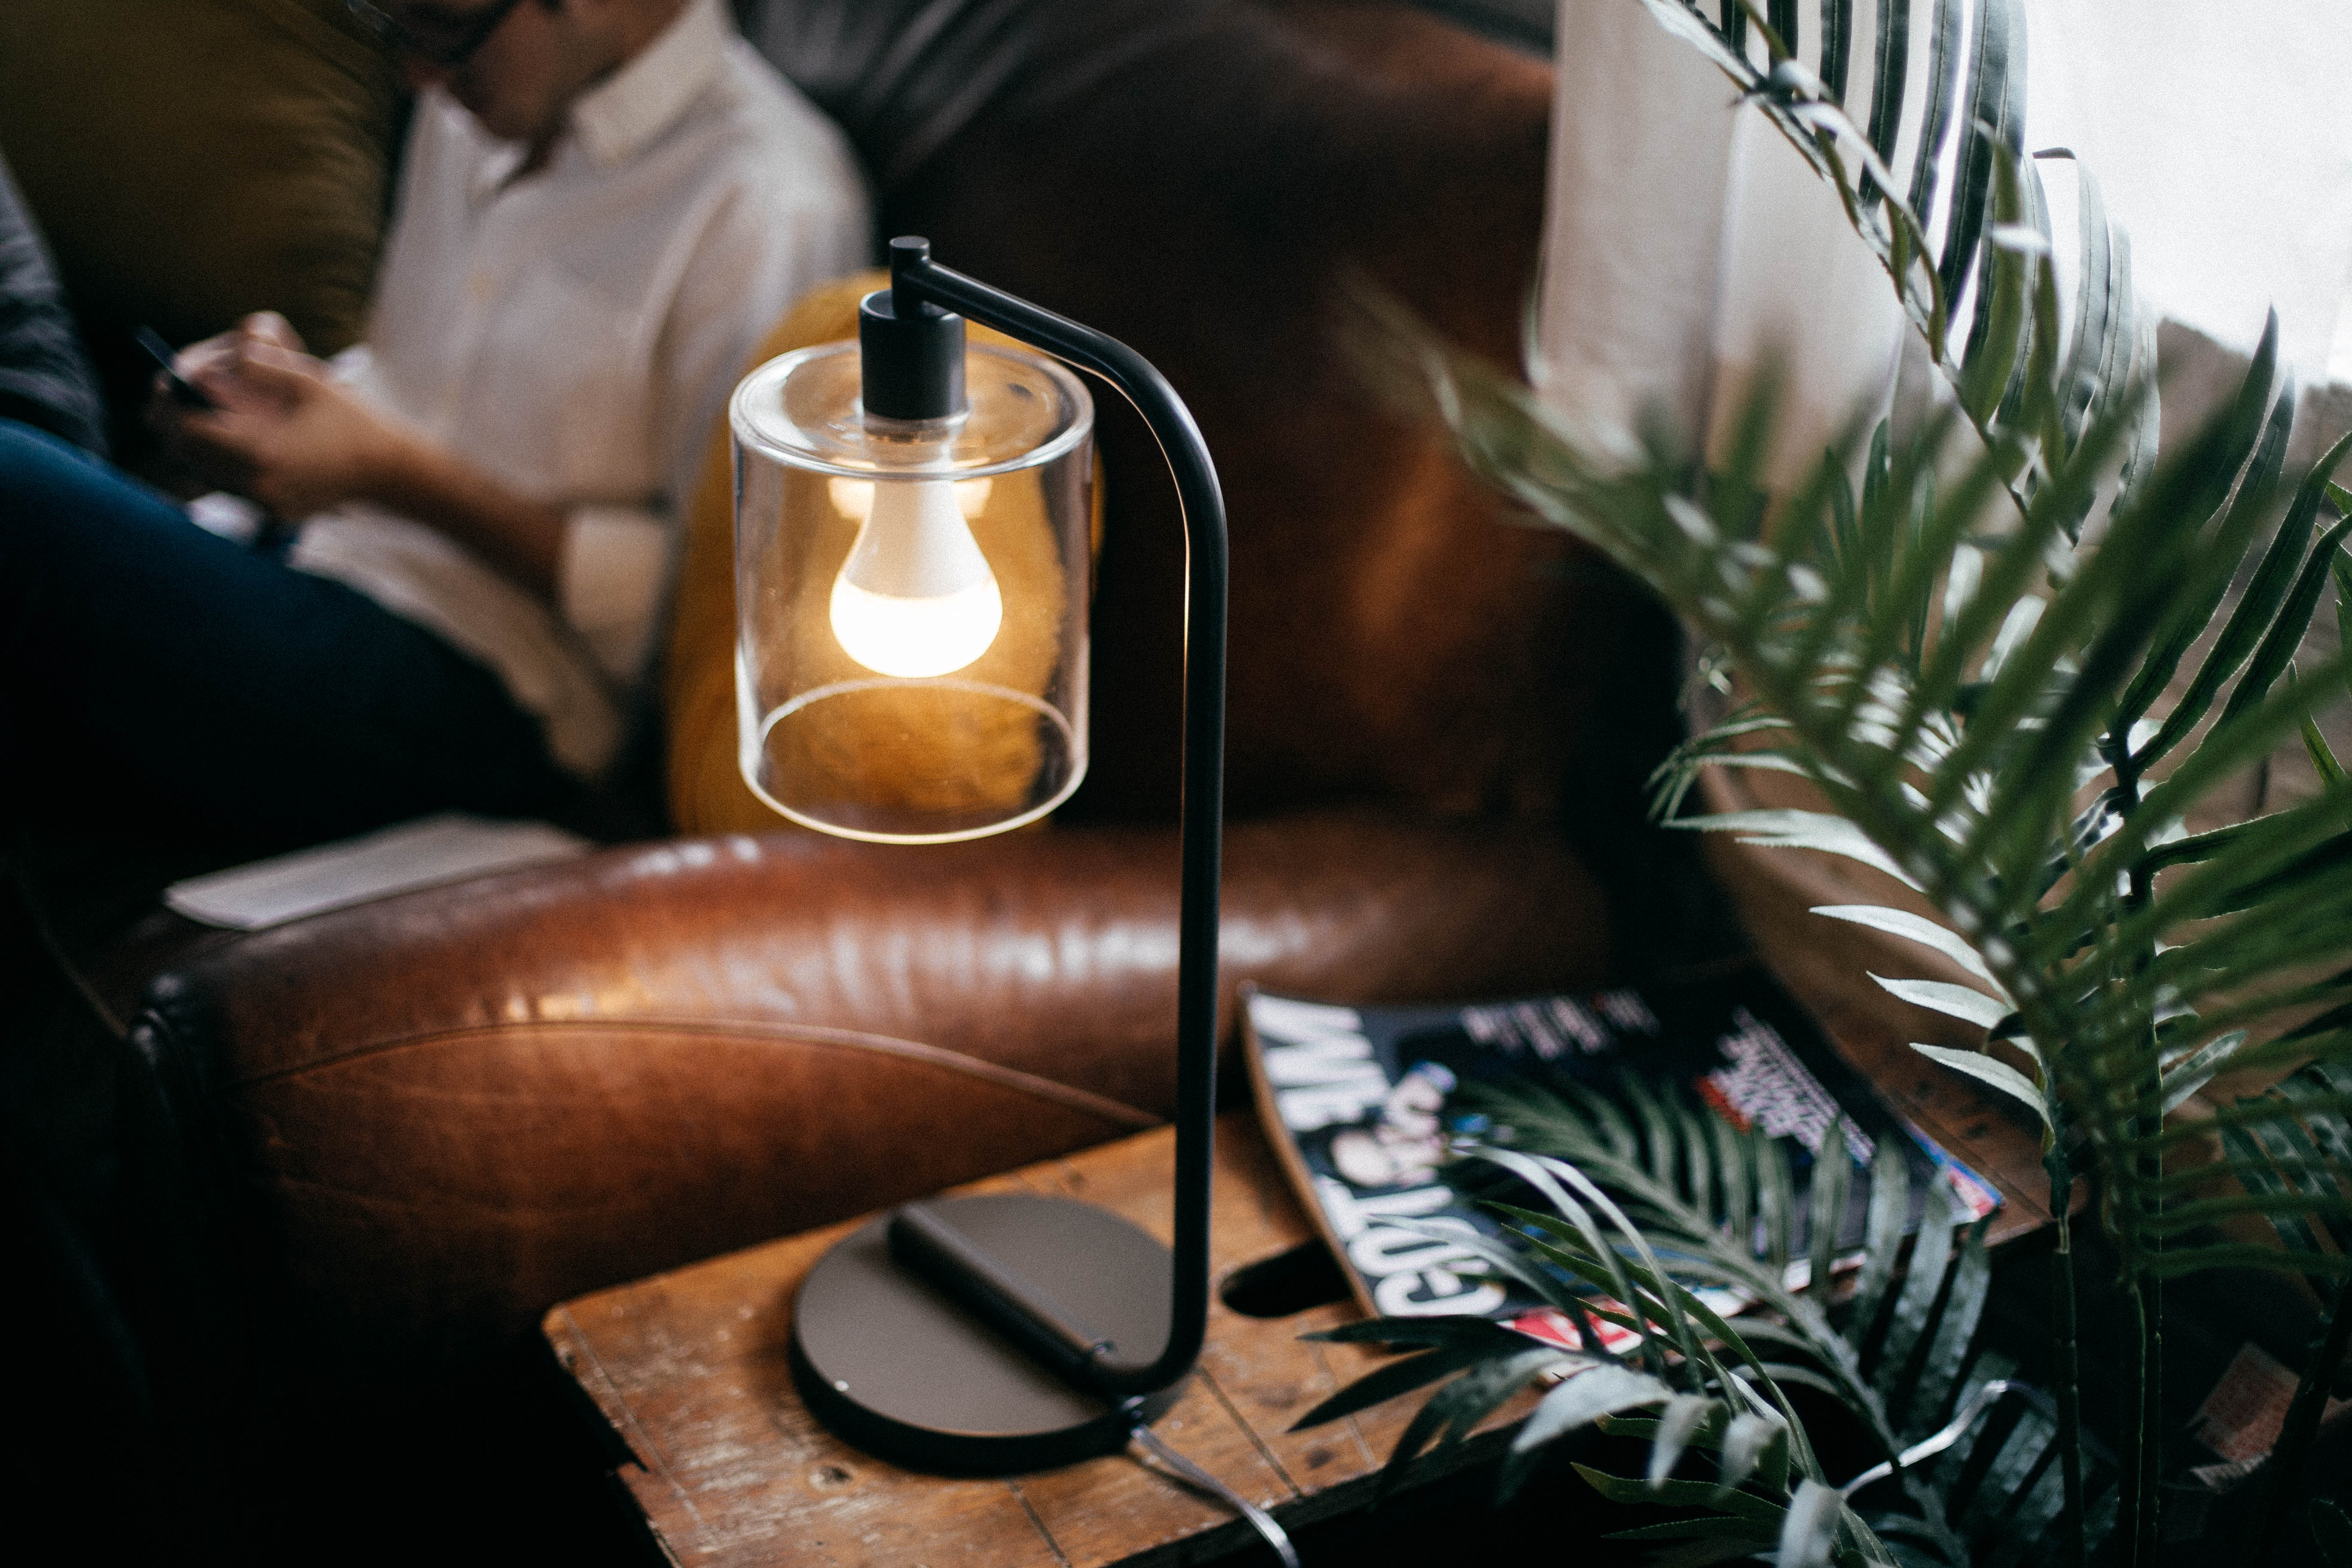 A space-saving Twist Smart LED Lightbulb, which is also an AirPlay speaker, is installed in a tiny black lamp and glowing.